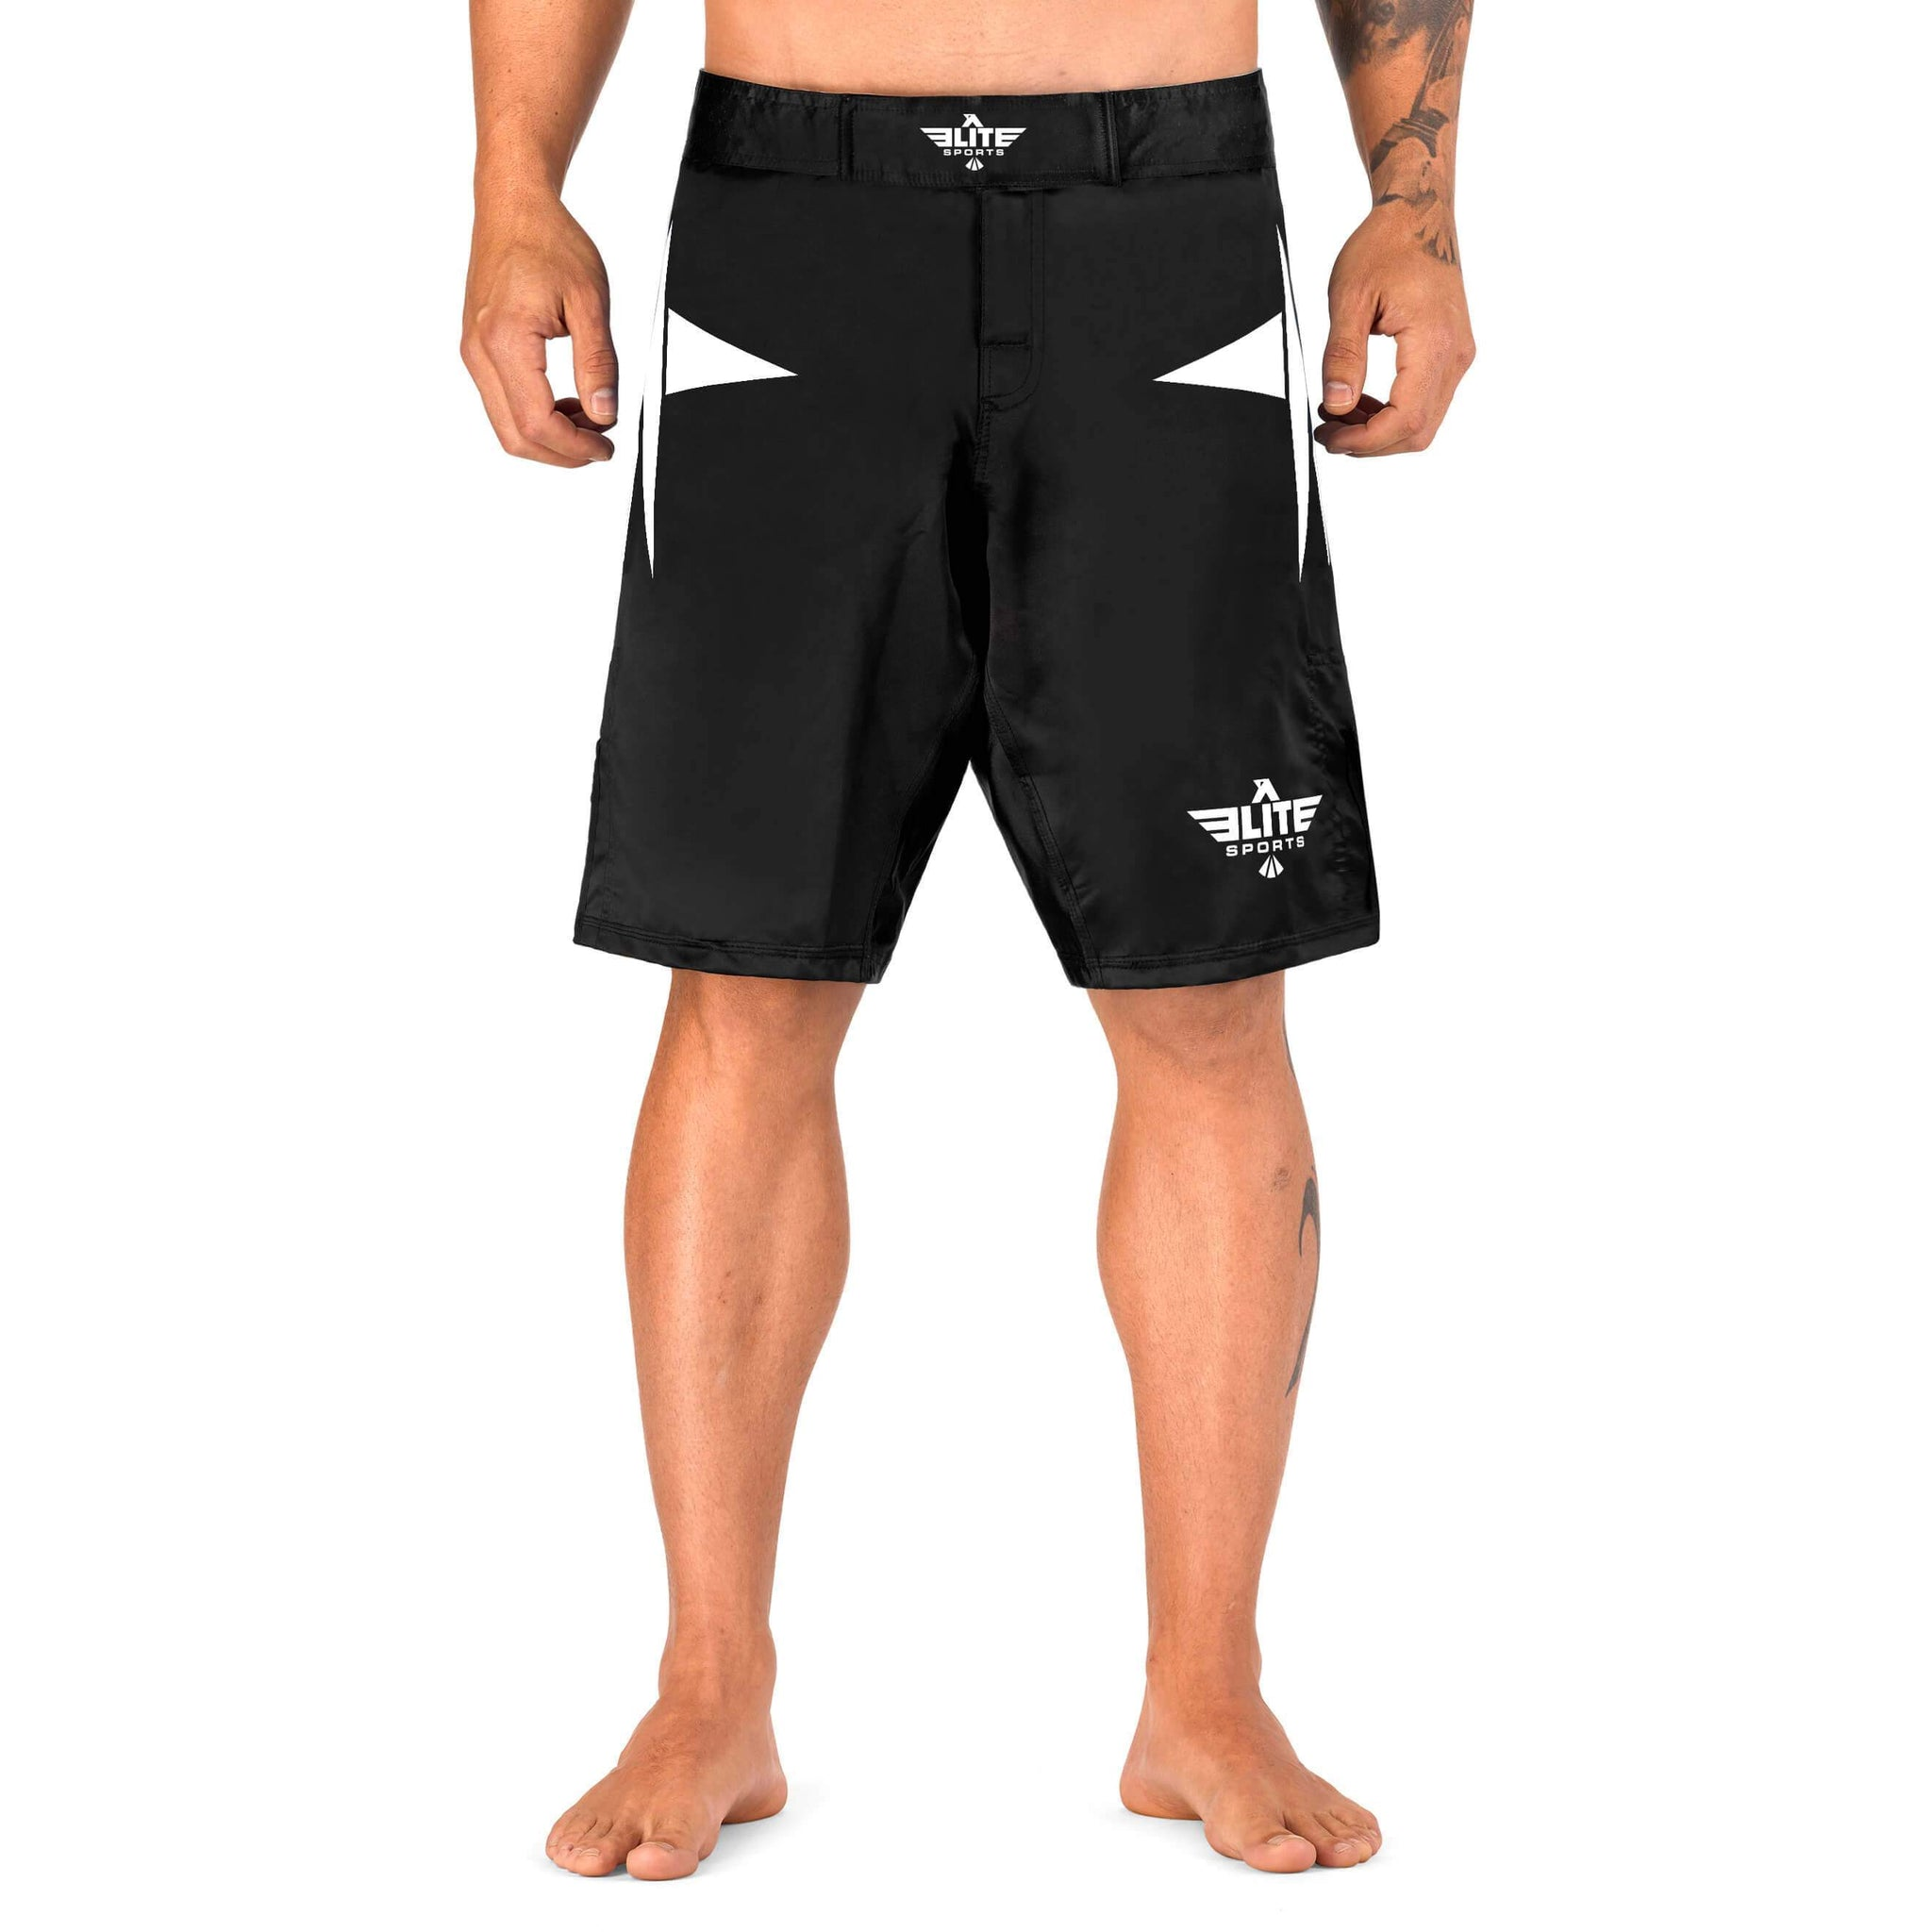 Load image into Gallery viewer, Elite Sports Star Series Sublimation Black/White Training Shorts